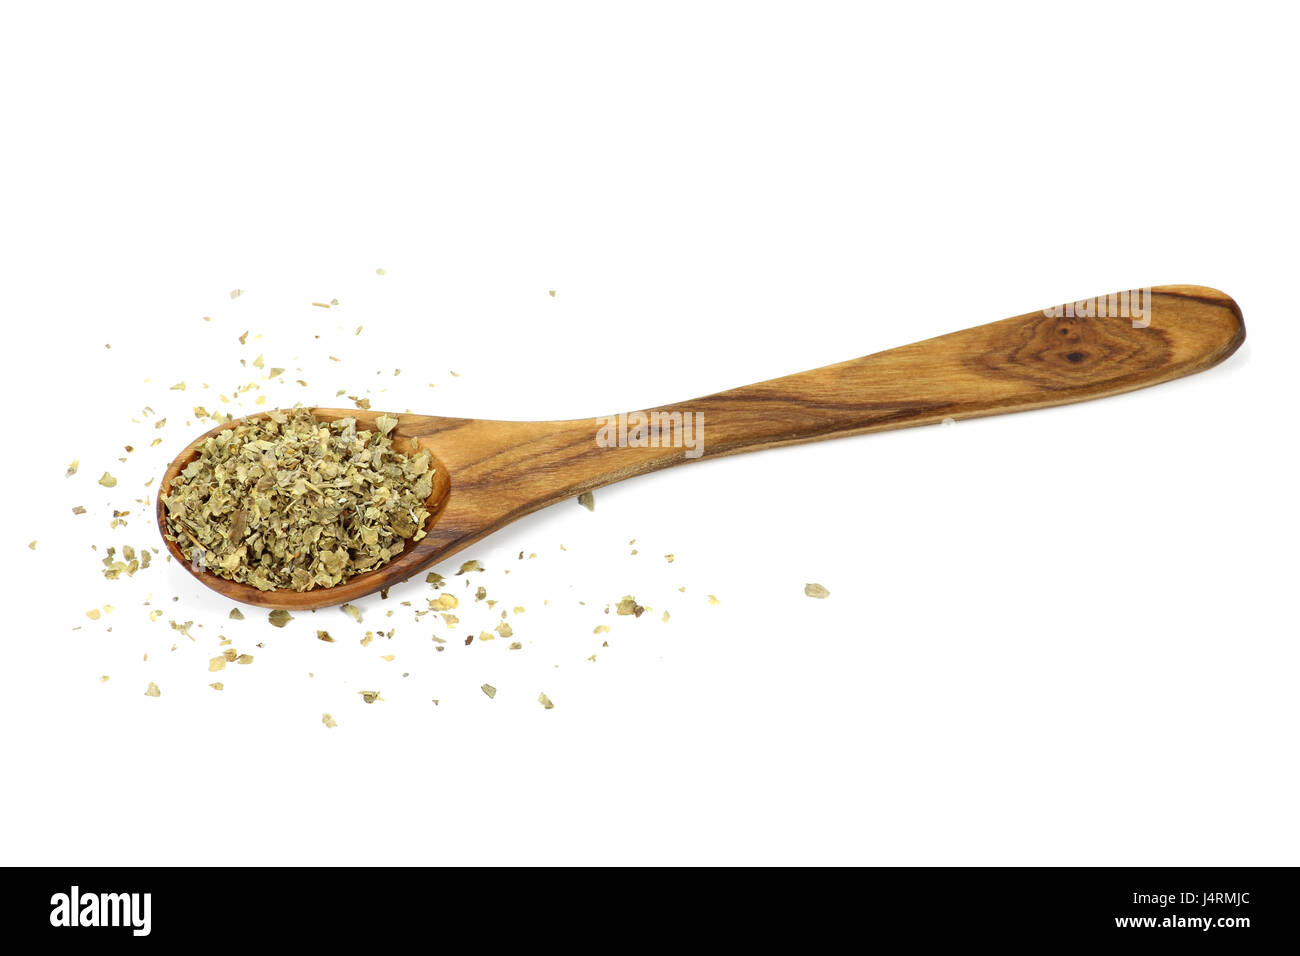 wooden spoon with marjoram isolated on white background - Stock Image